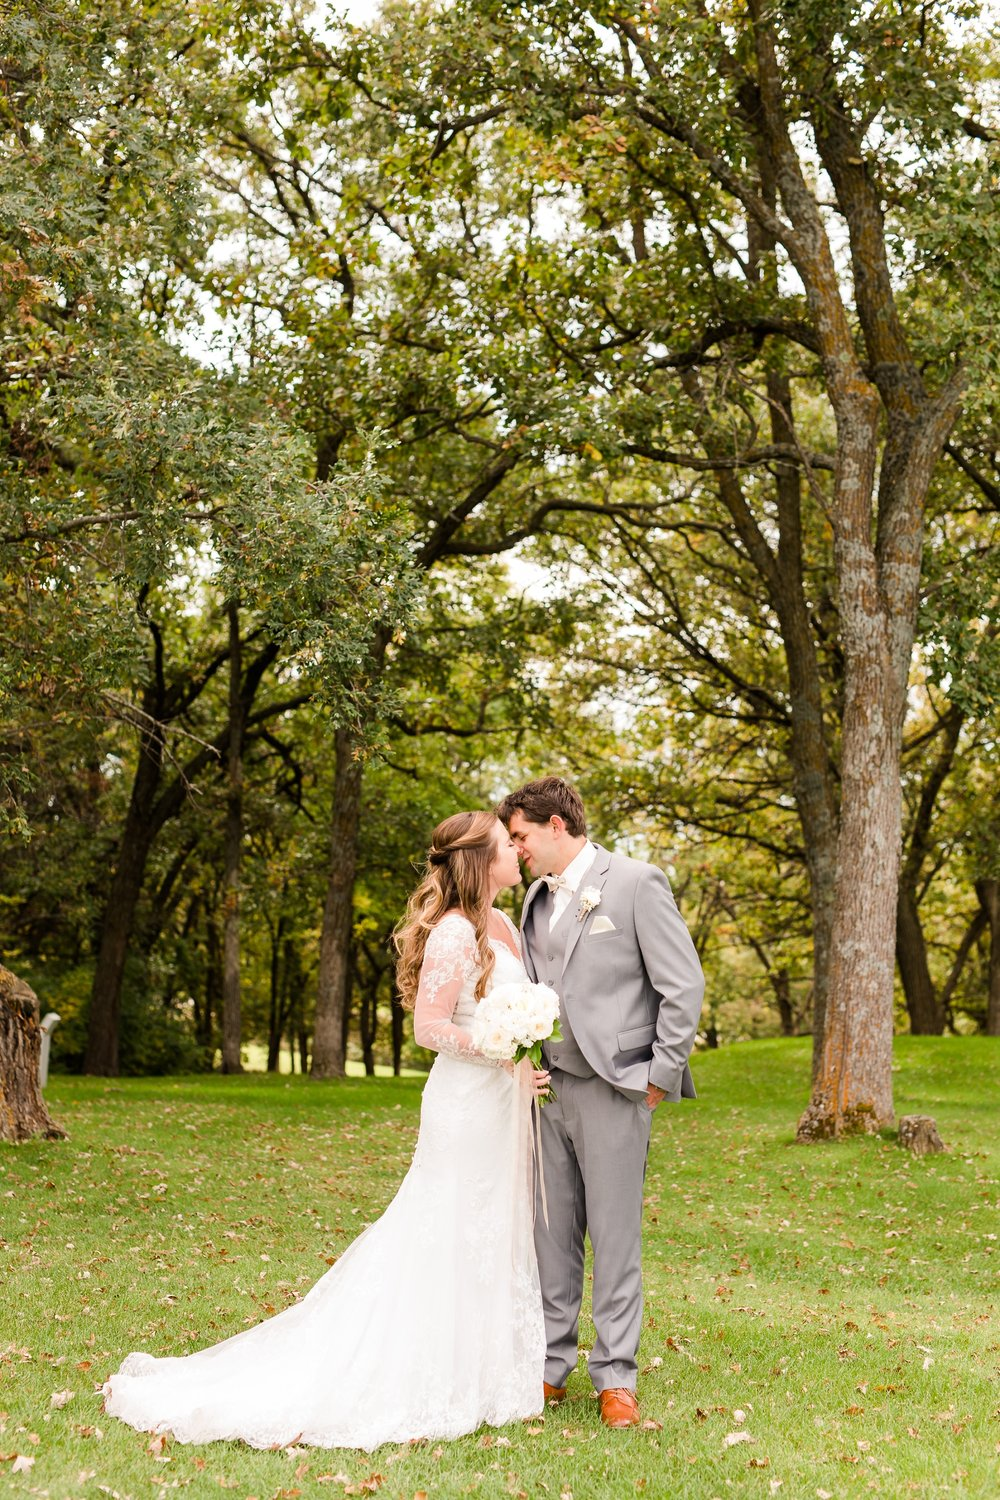 AmberLangerudPhotography_Fair Hills Resort Lakeside Wedding in Minnesota_3434.jpg